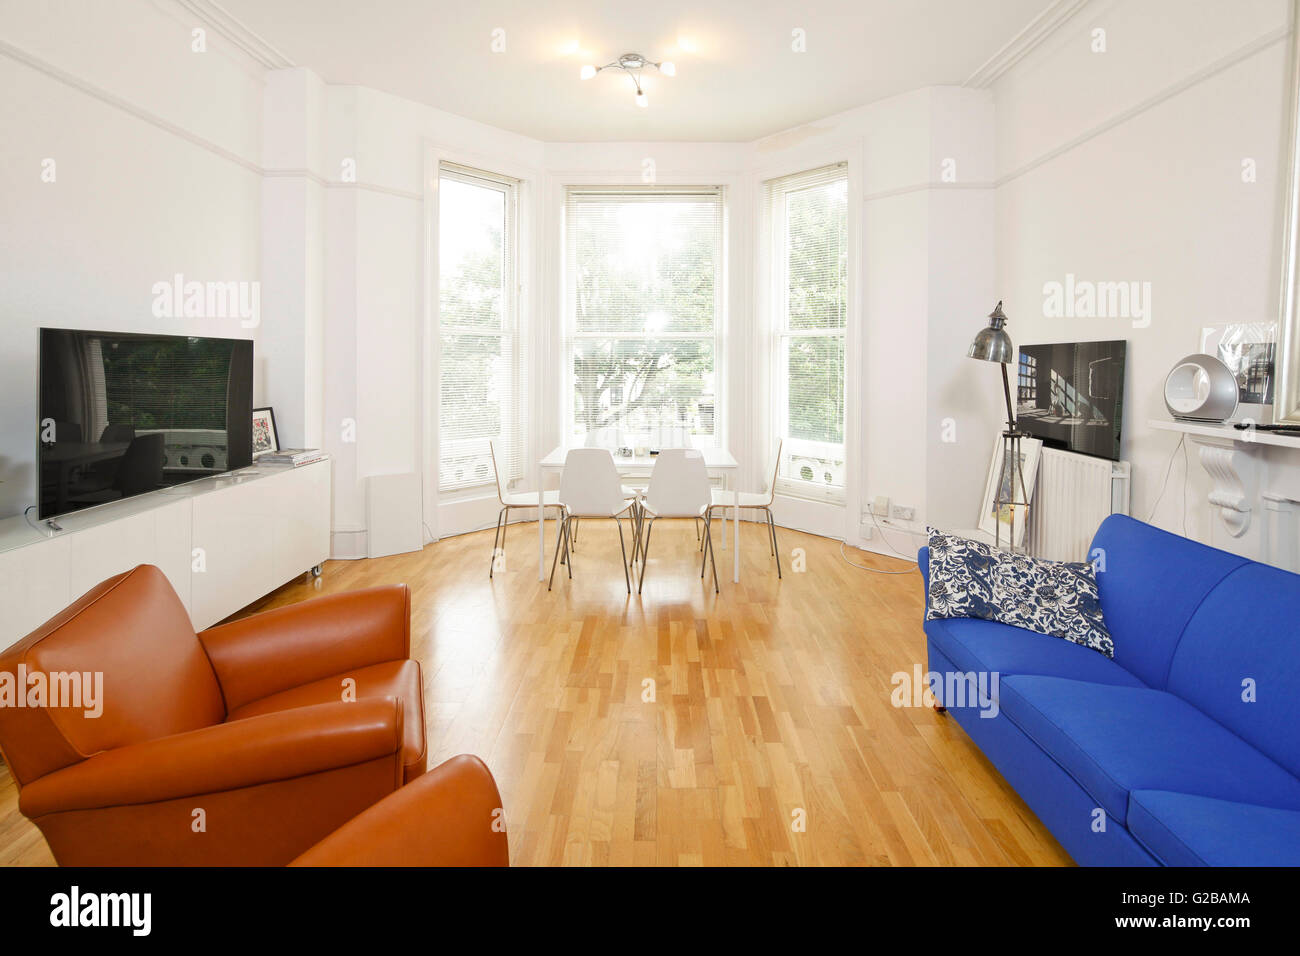 Flat bay windows - Open Plan Living And Dining Room With Bay Windows And Colourful Sofa And Chairs Flat Screen Tv On Side Table Wood Floors With Modern Floor Lamp